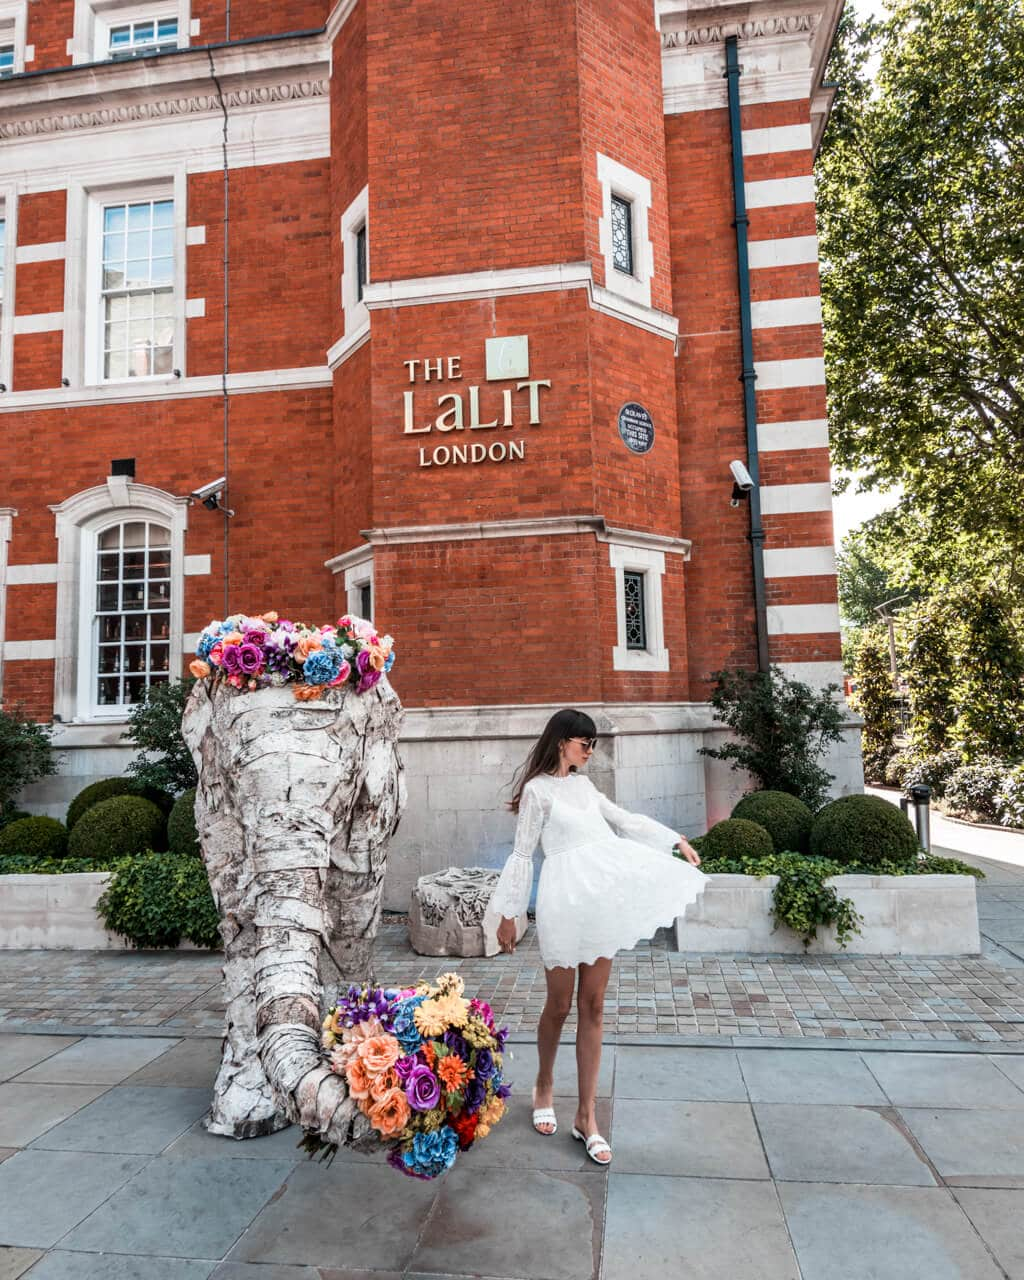 Staying in The LaLit London hotel | Hedonistit.com